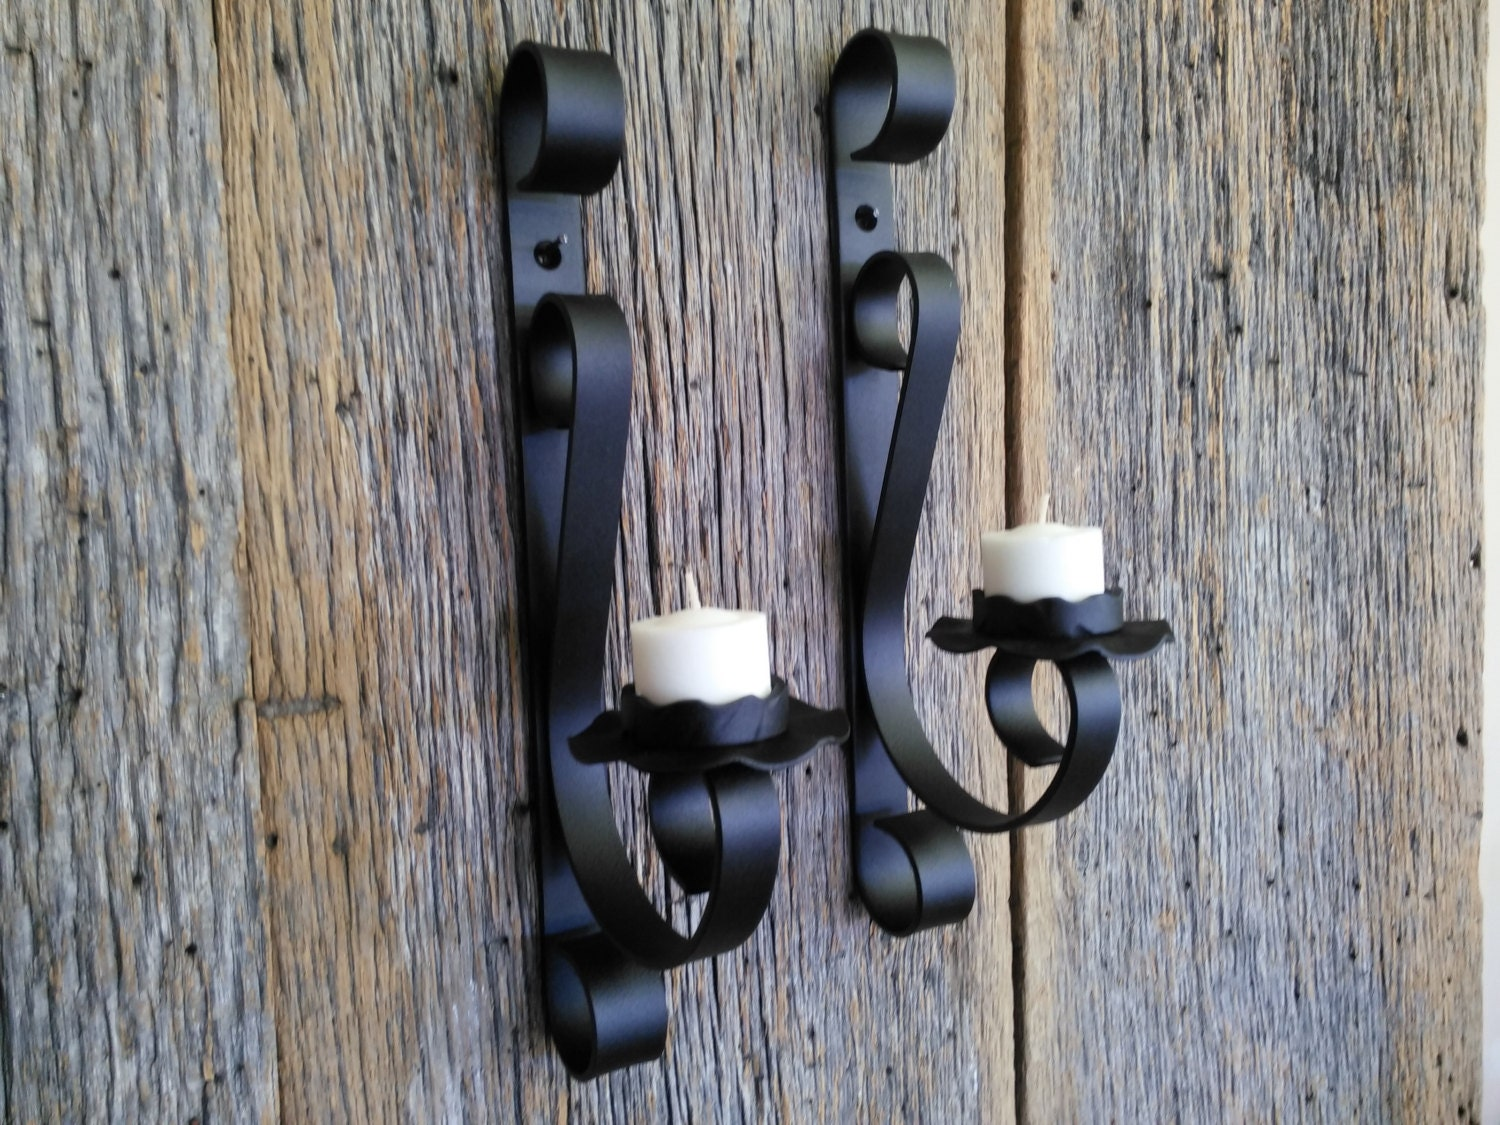 Rustic Iron Wall Sconces : Candle wall sconce rustic wrought iron metal by metalkraftdecor